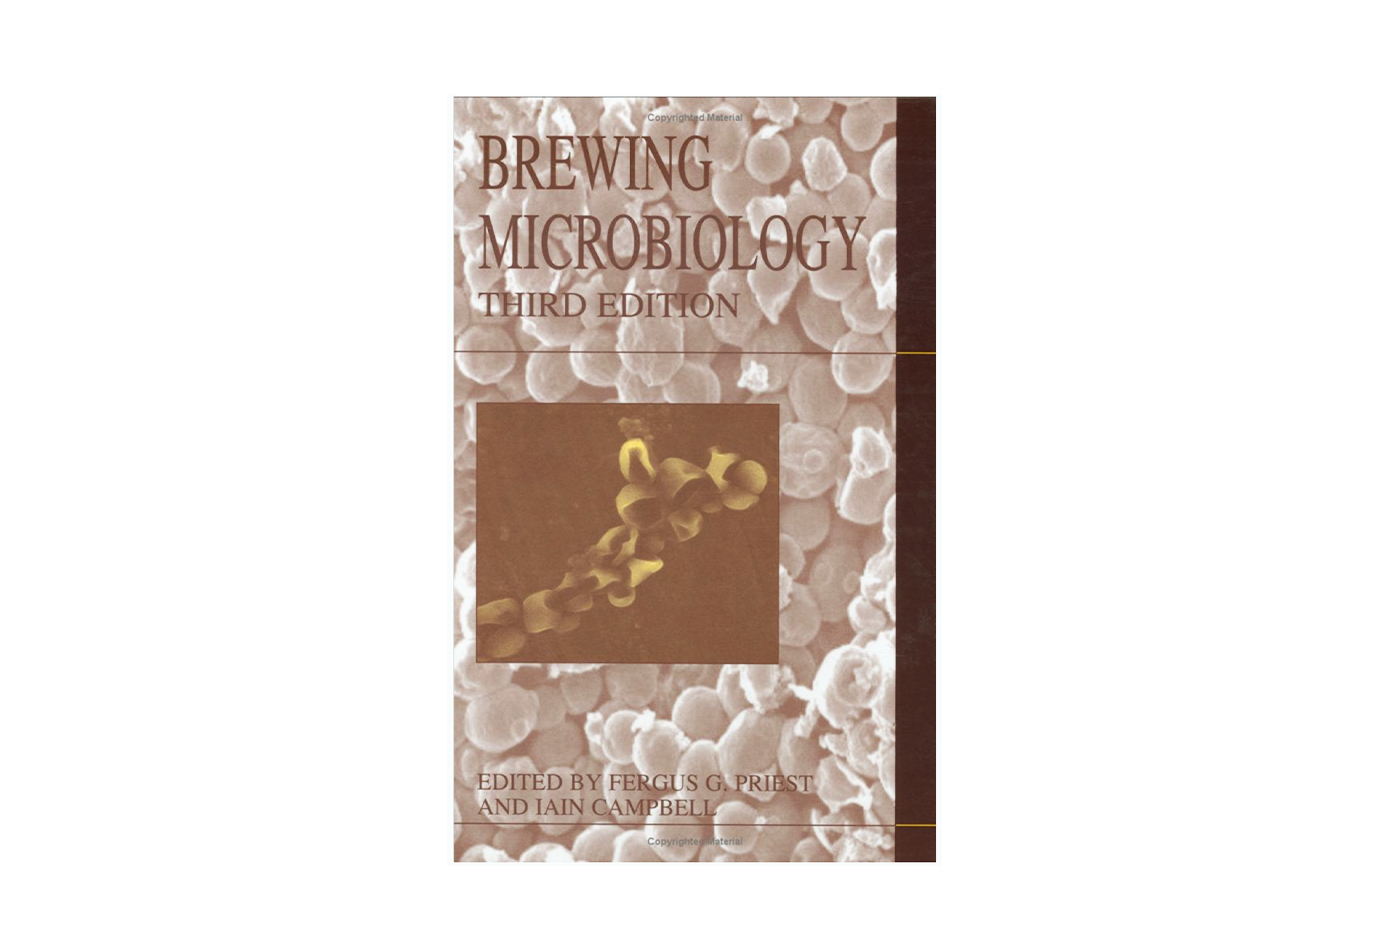 Brewing Microbiology Yeast Book Third Edition